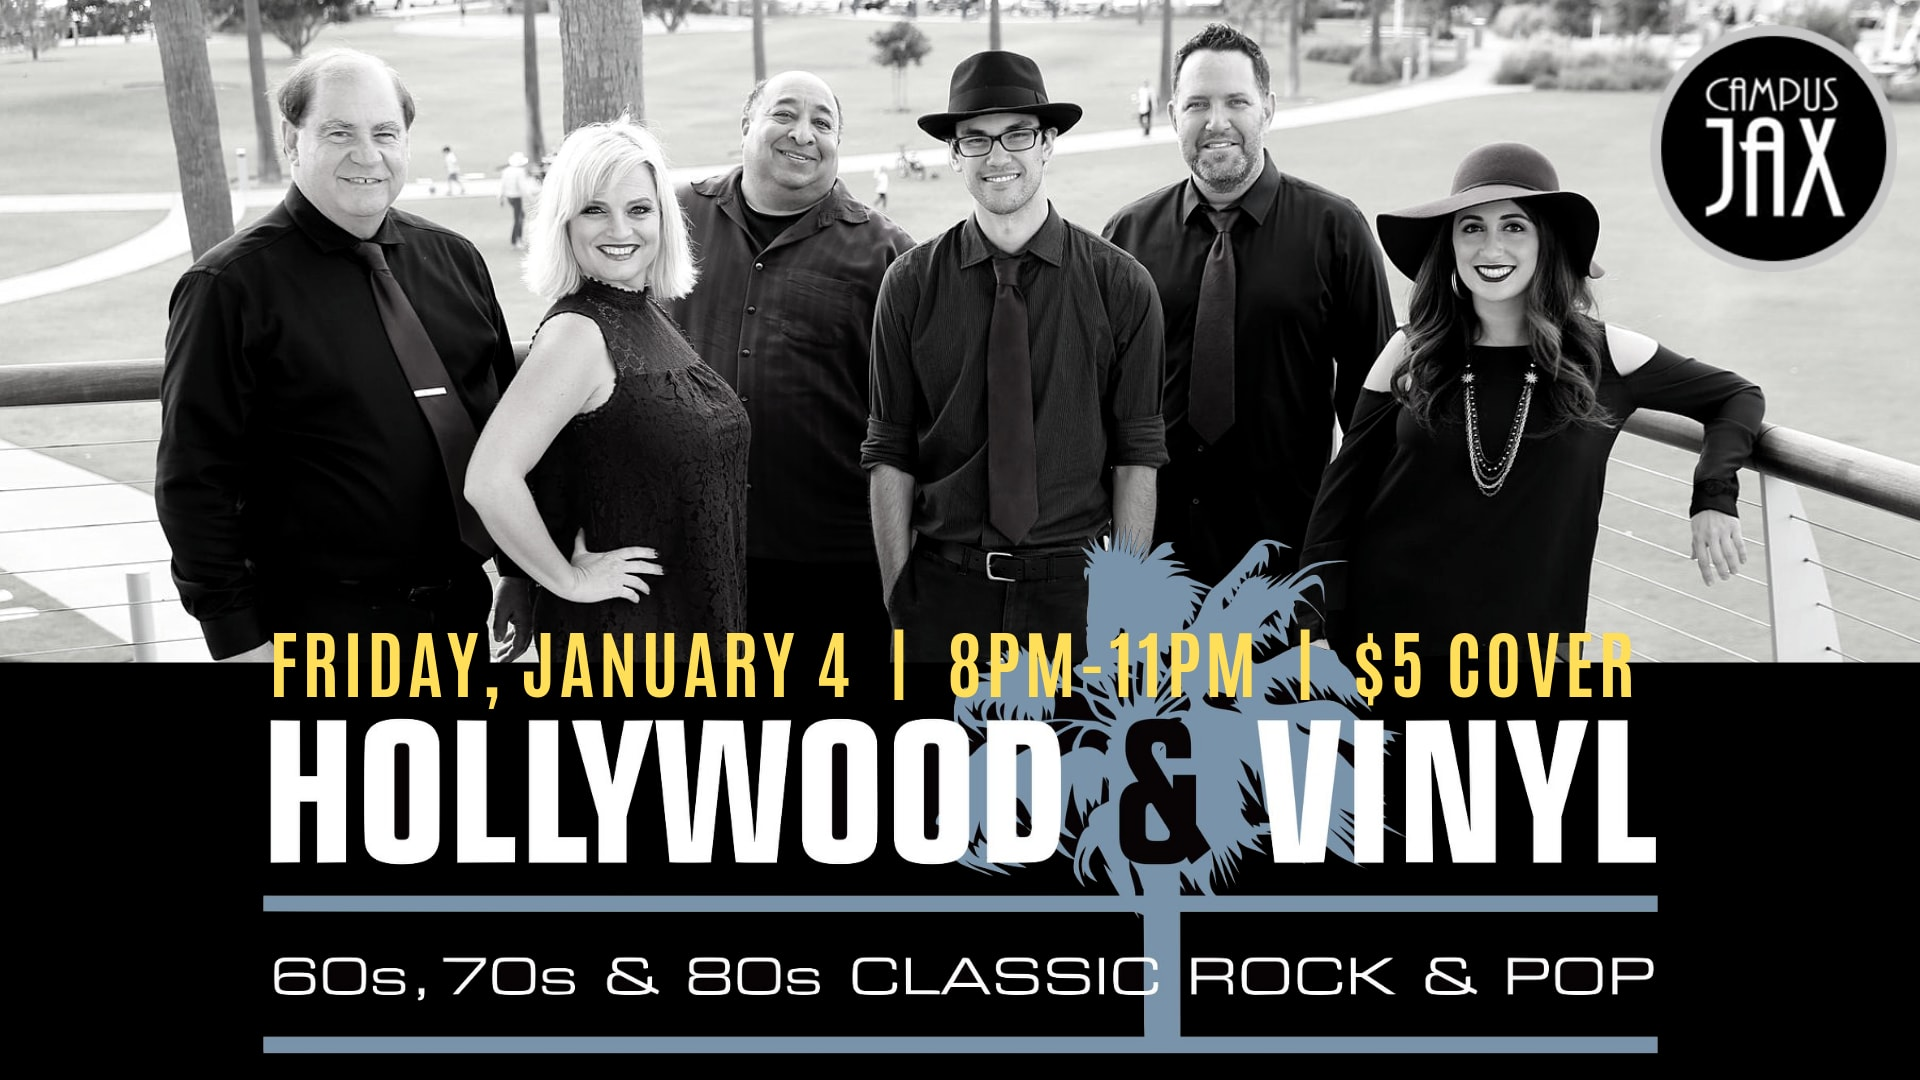 January 4 | HOLLYWOOD & VINYL - A Pete Jacobs Production